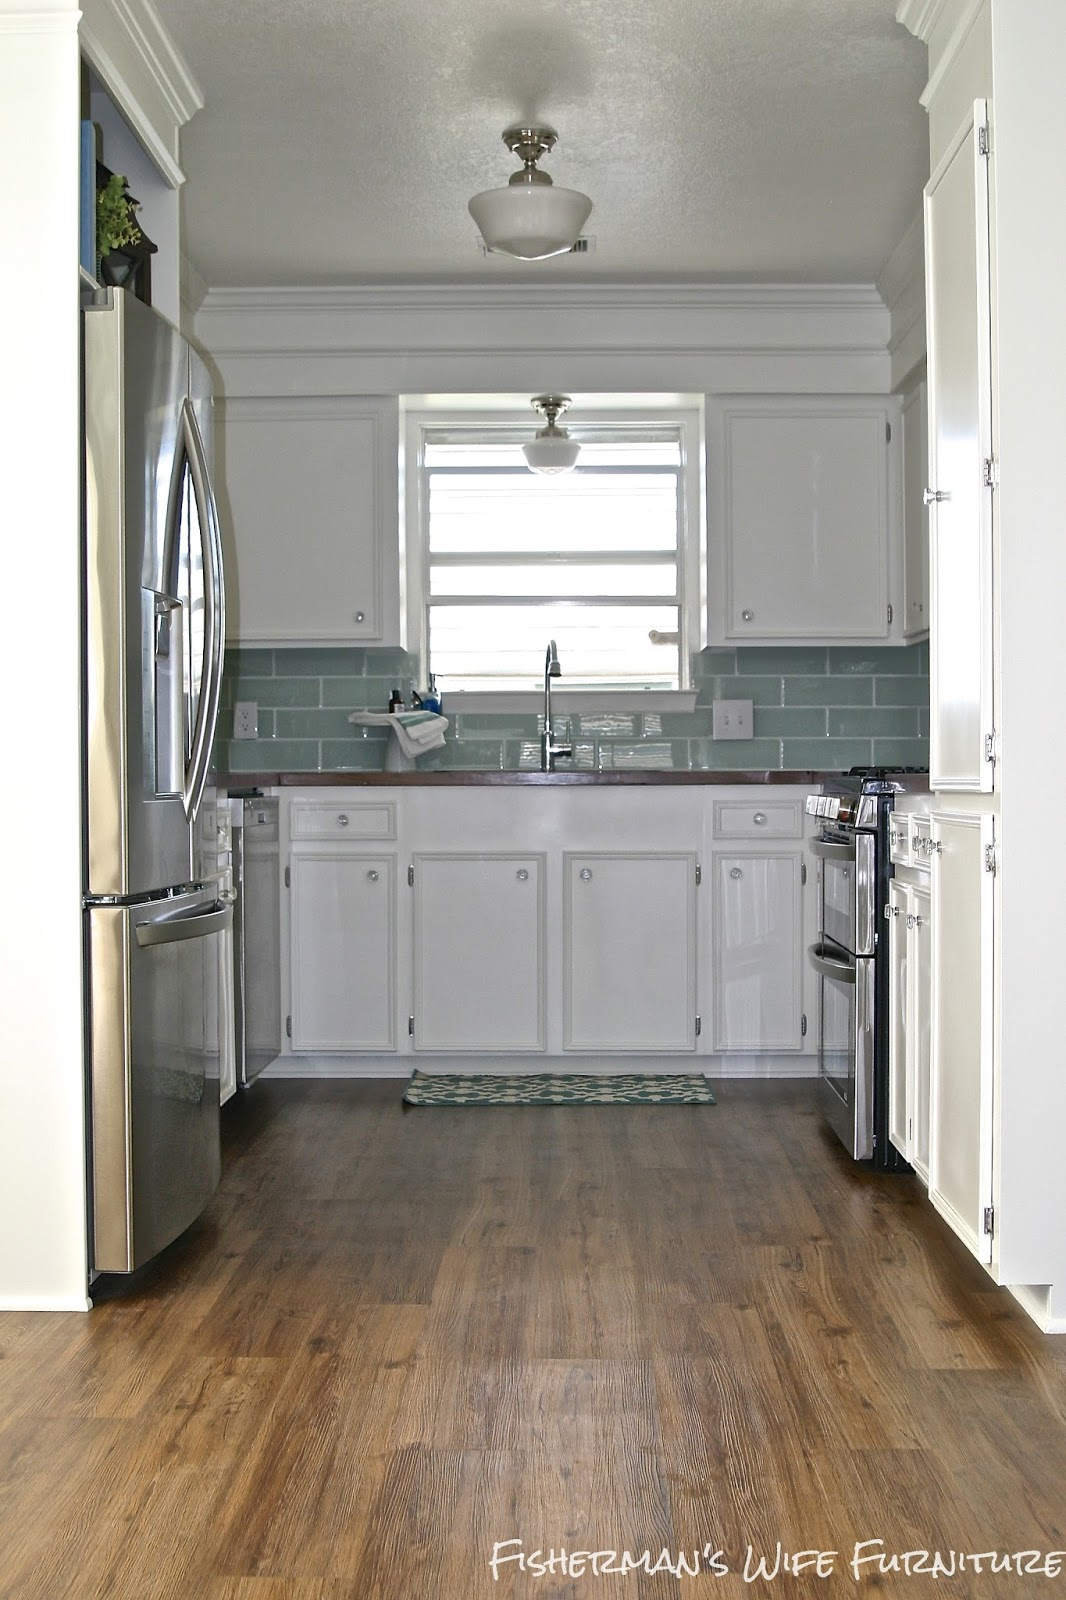 Unique Small White Kitchen Makeover with Built In Fridge Enclosure Fisherman us Wife Furniture featured on